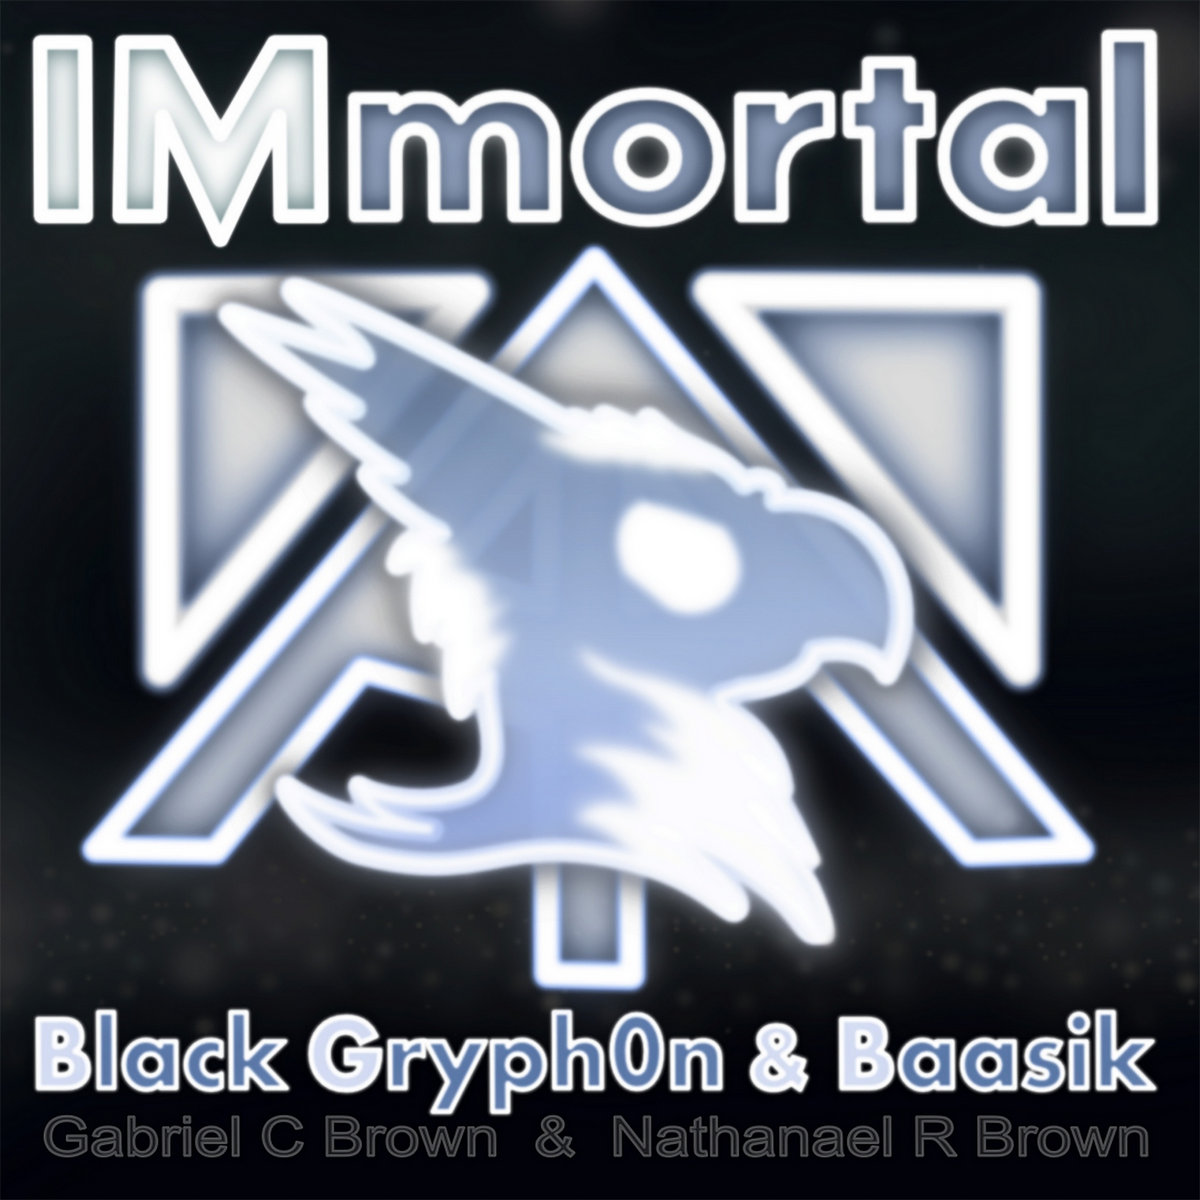 blackgryph0n immortal